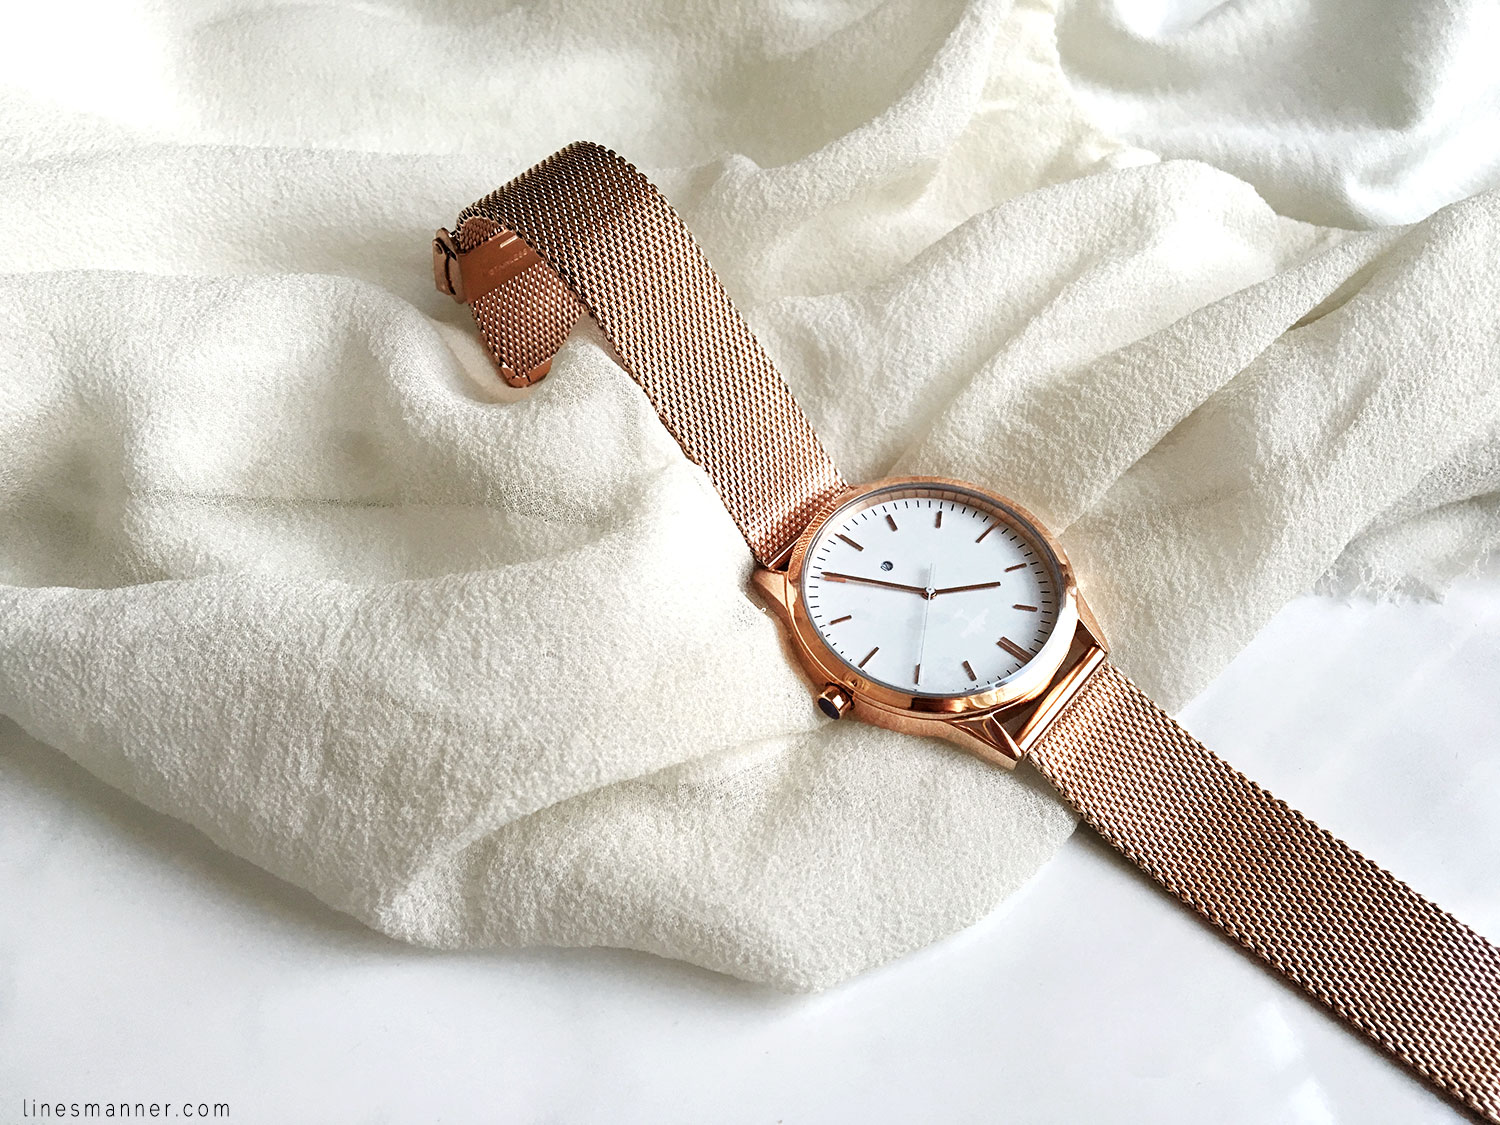 Lines-Manner-Rose_Gold-Under_The_Sun-Details-Essentials-Delicate-Minimal-Watch-Elegant-Effortless-2